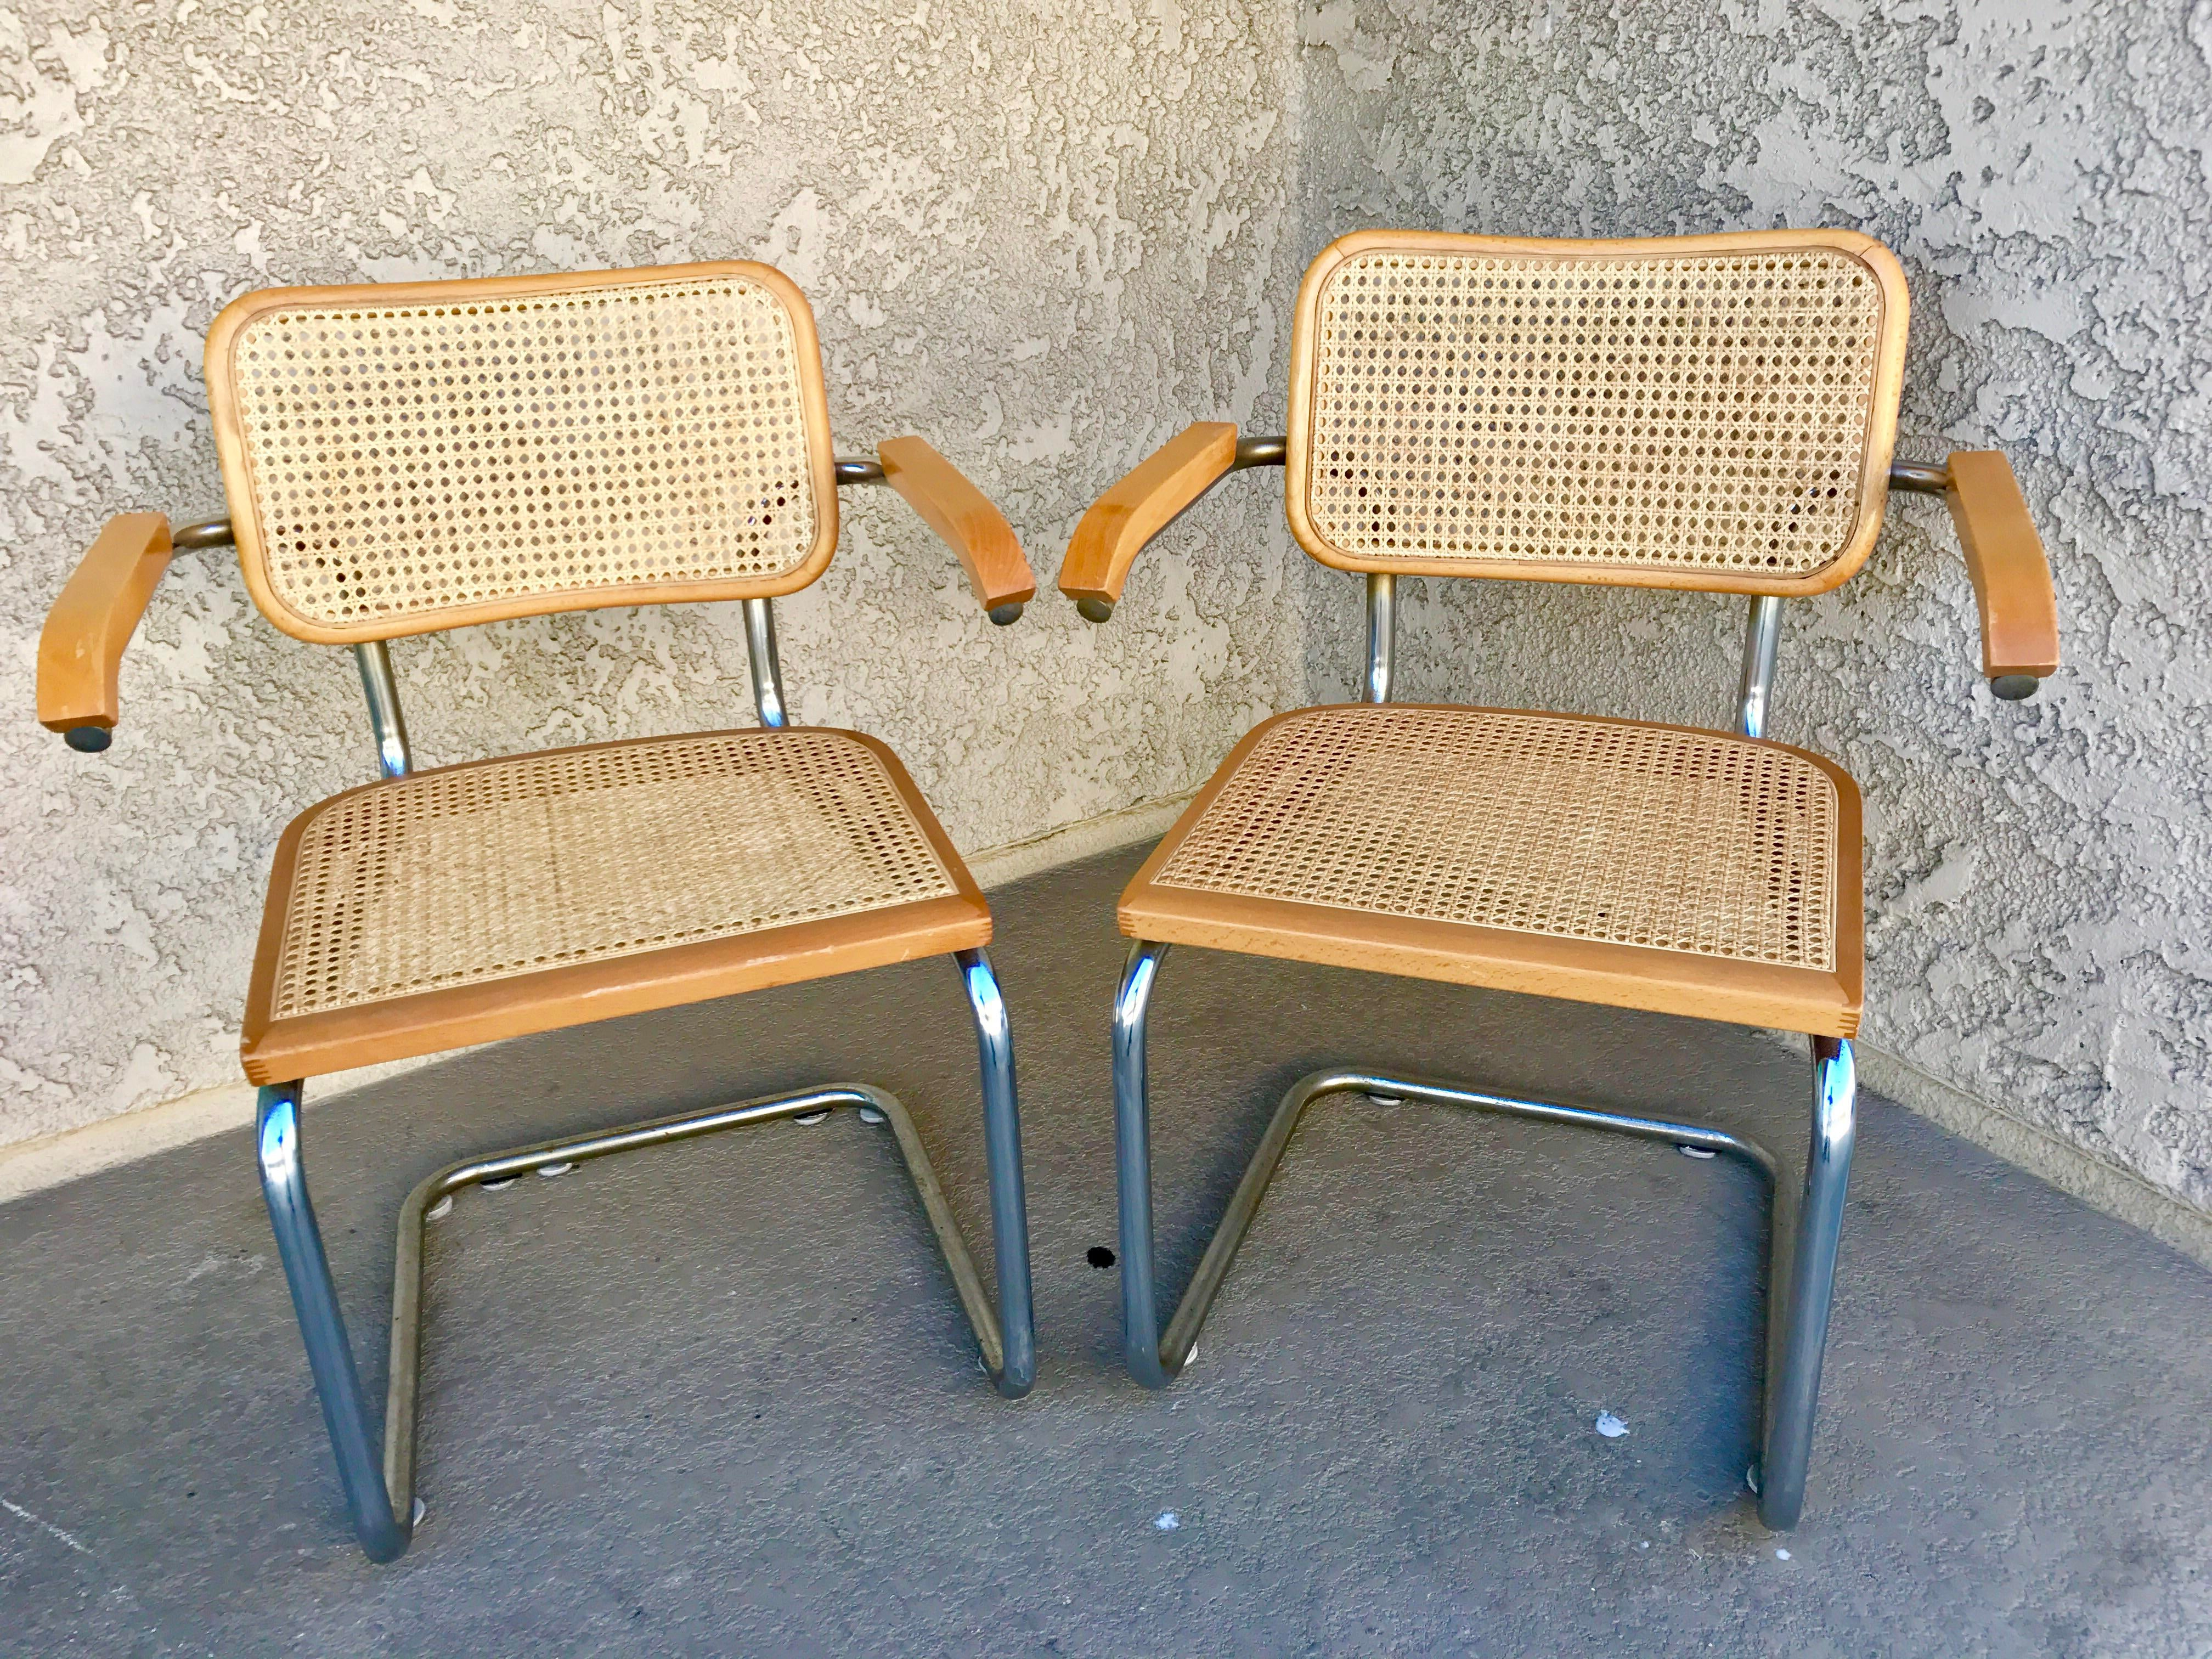 marcel breuer cesca chair with armrests kitchen table seat covers b64 chairs a pair chairish this is of s cantilever one model